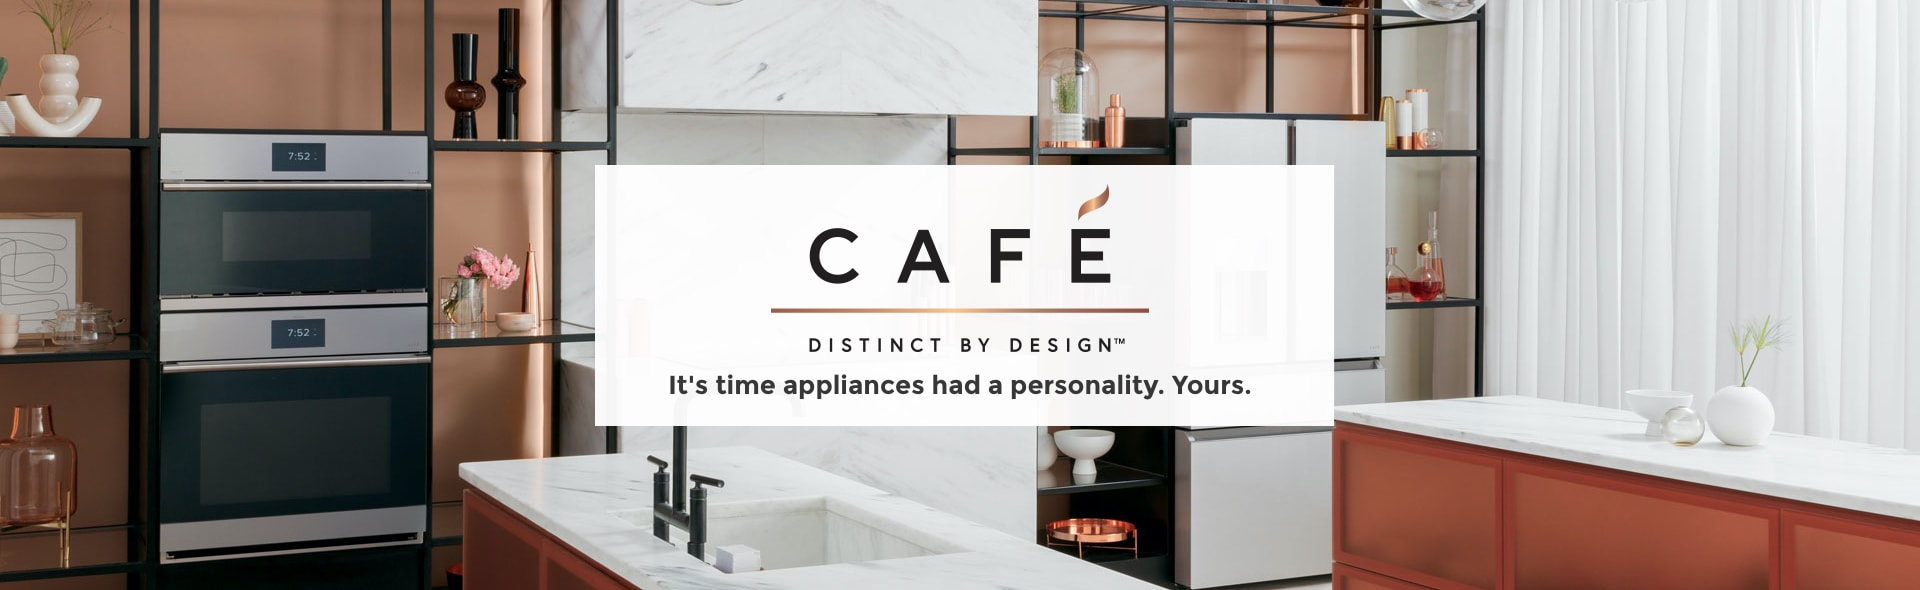 cafe appliances